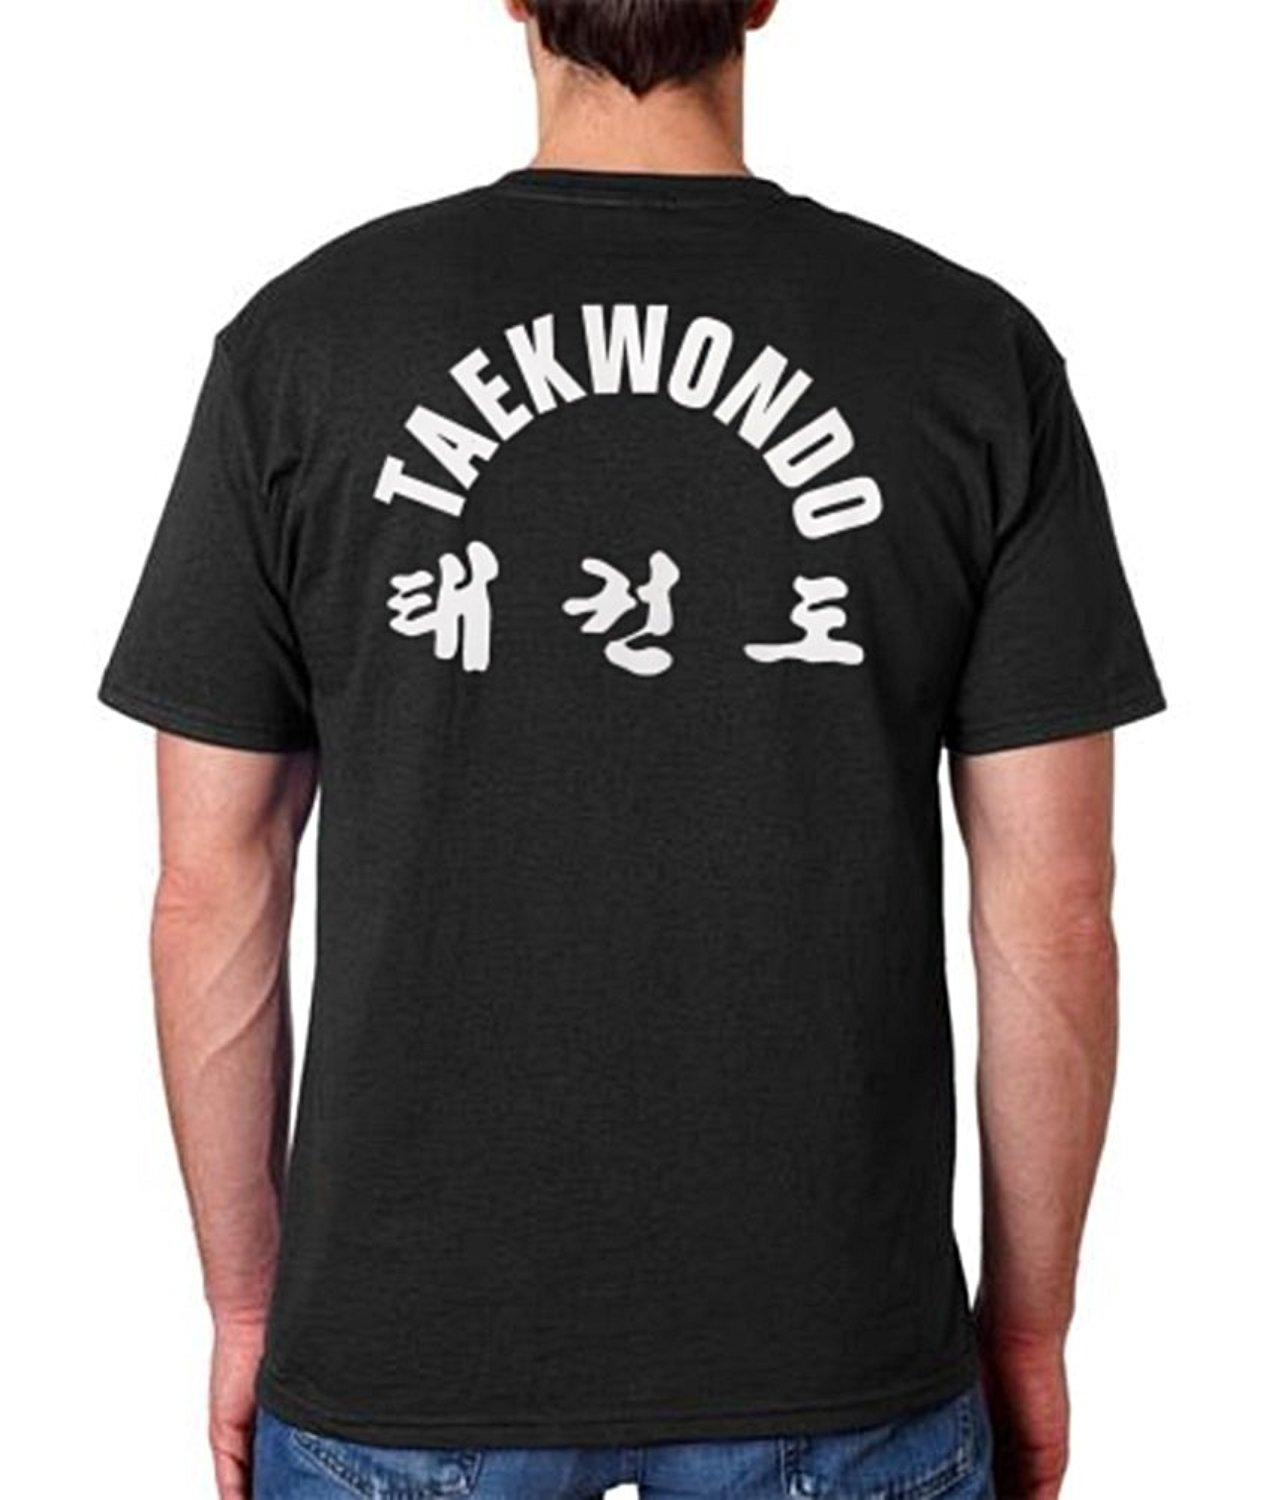 2019 Hot Sale 100% Cotton Gbox Embroidery Tae Kwon Do T-shirt Adult Unisex in 65 Colors Upto 5xl Summer Tee Shirt